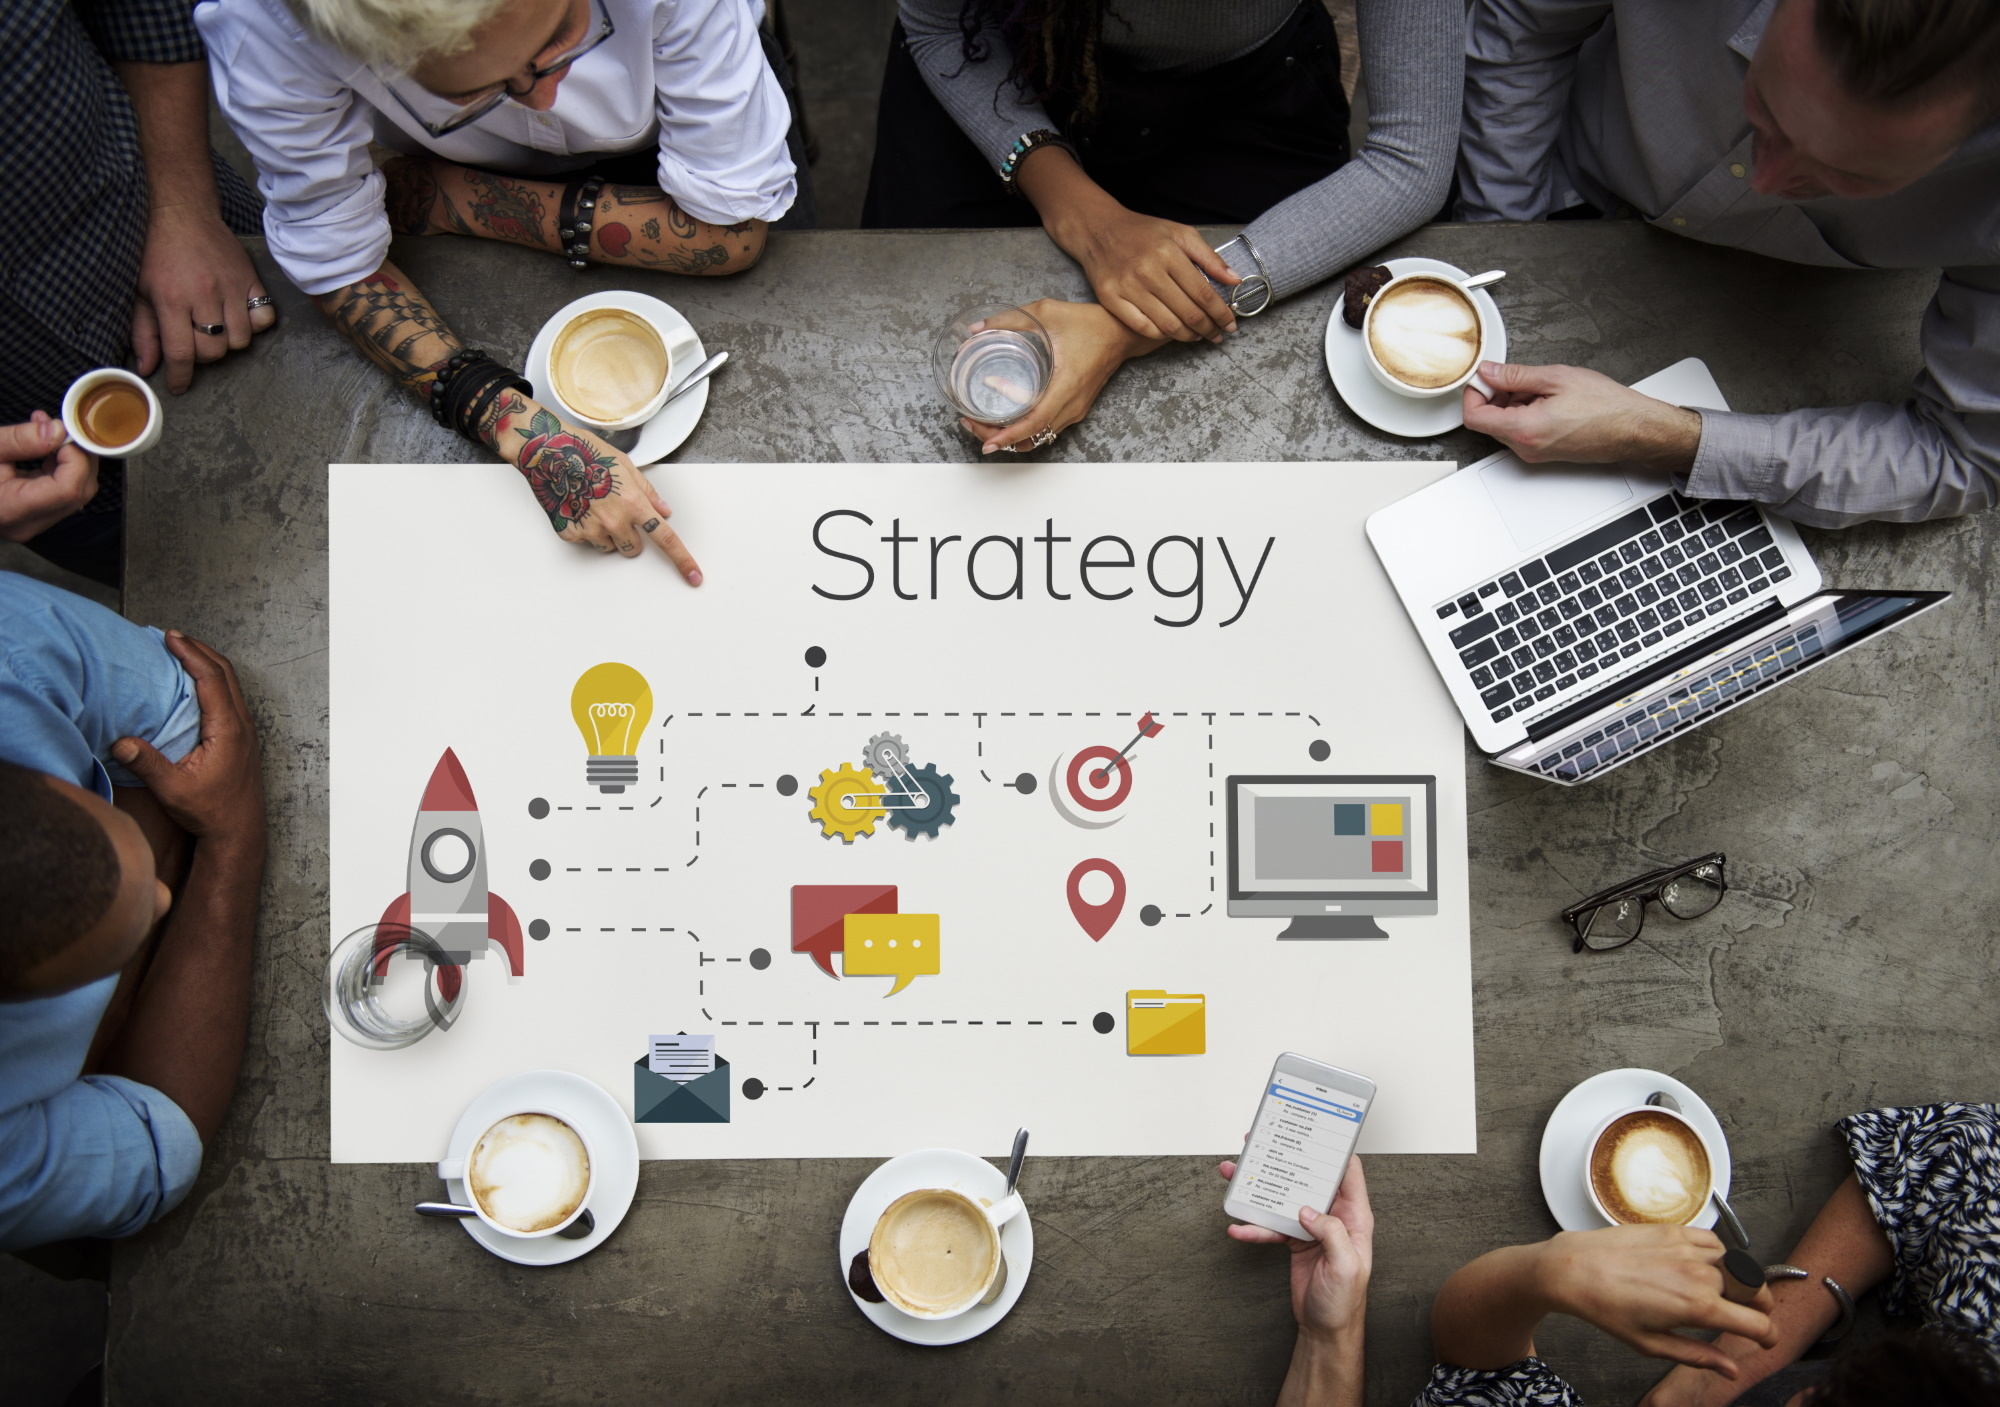 Is your IT provider leading your digital strategy?